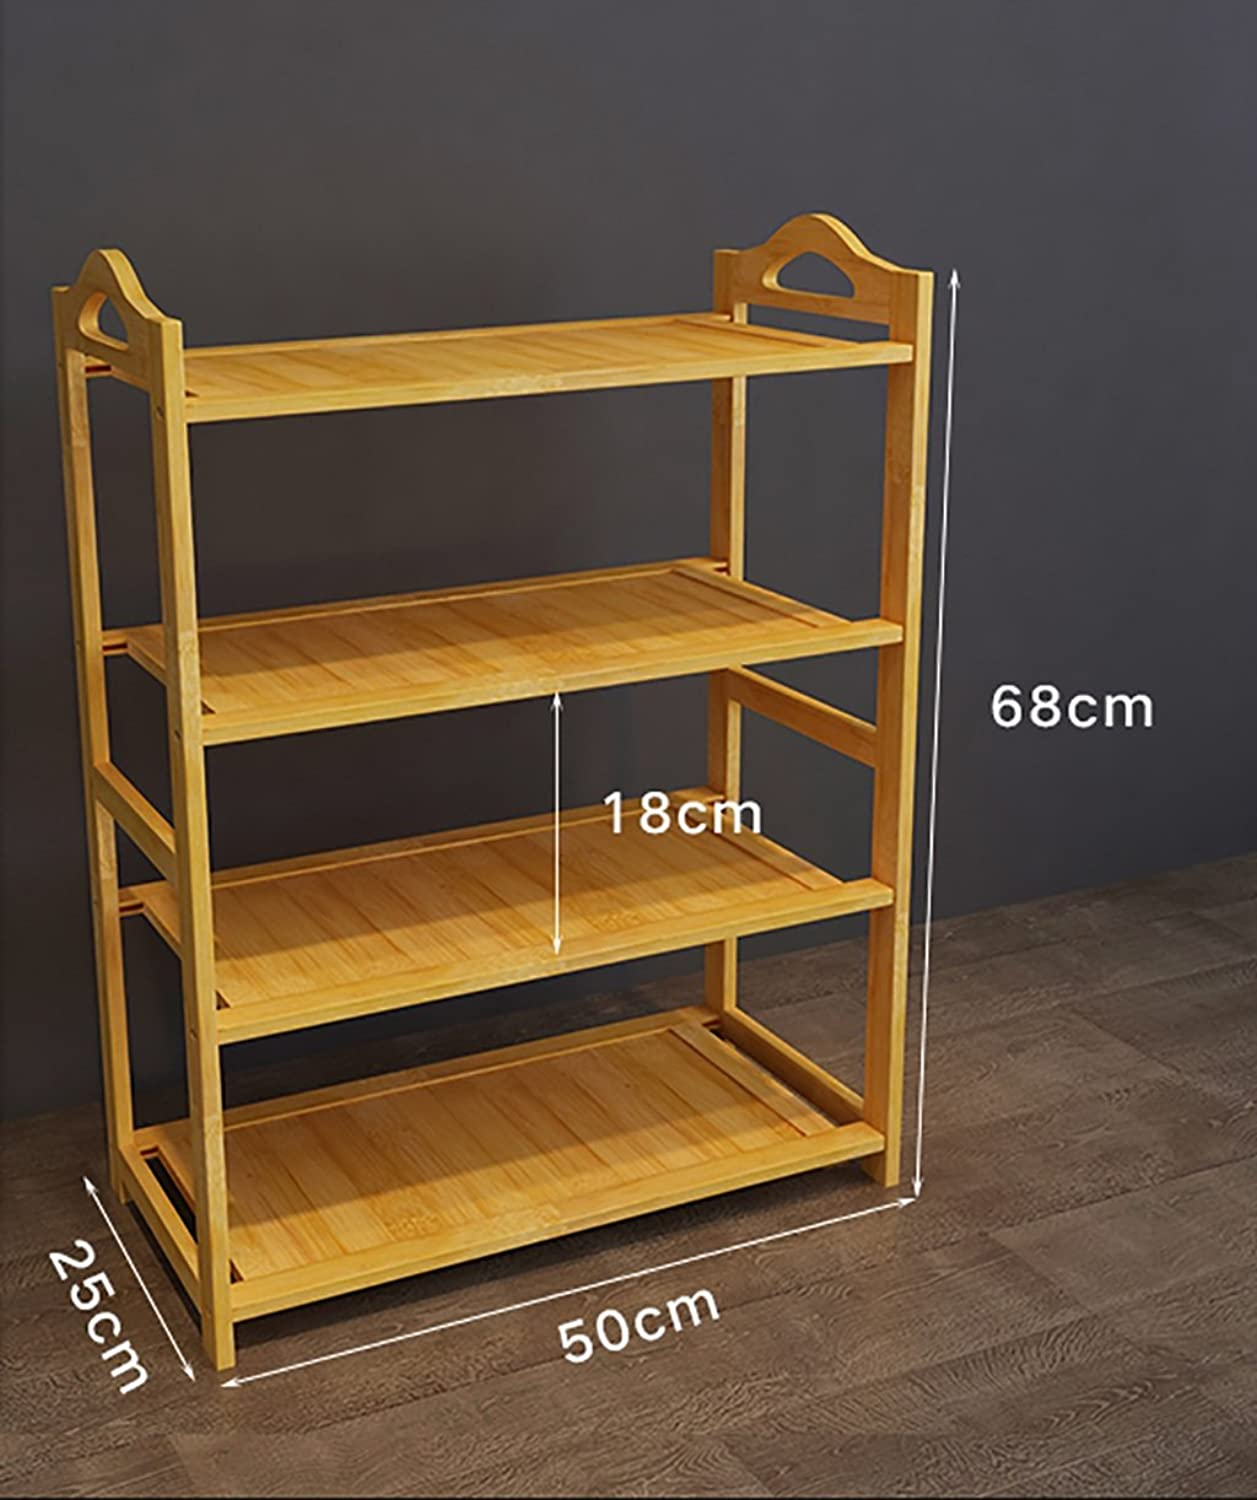 shoes Bench Organizing Rack Solid Wood shoes Rack, Simple Four-Storey shoes Cabinet, Multi-Functional Slippers Rack, Economical Home shoes Rack, shoes Storage Rack (Size   50cm)